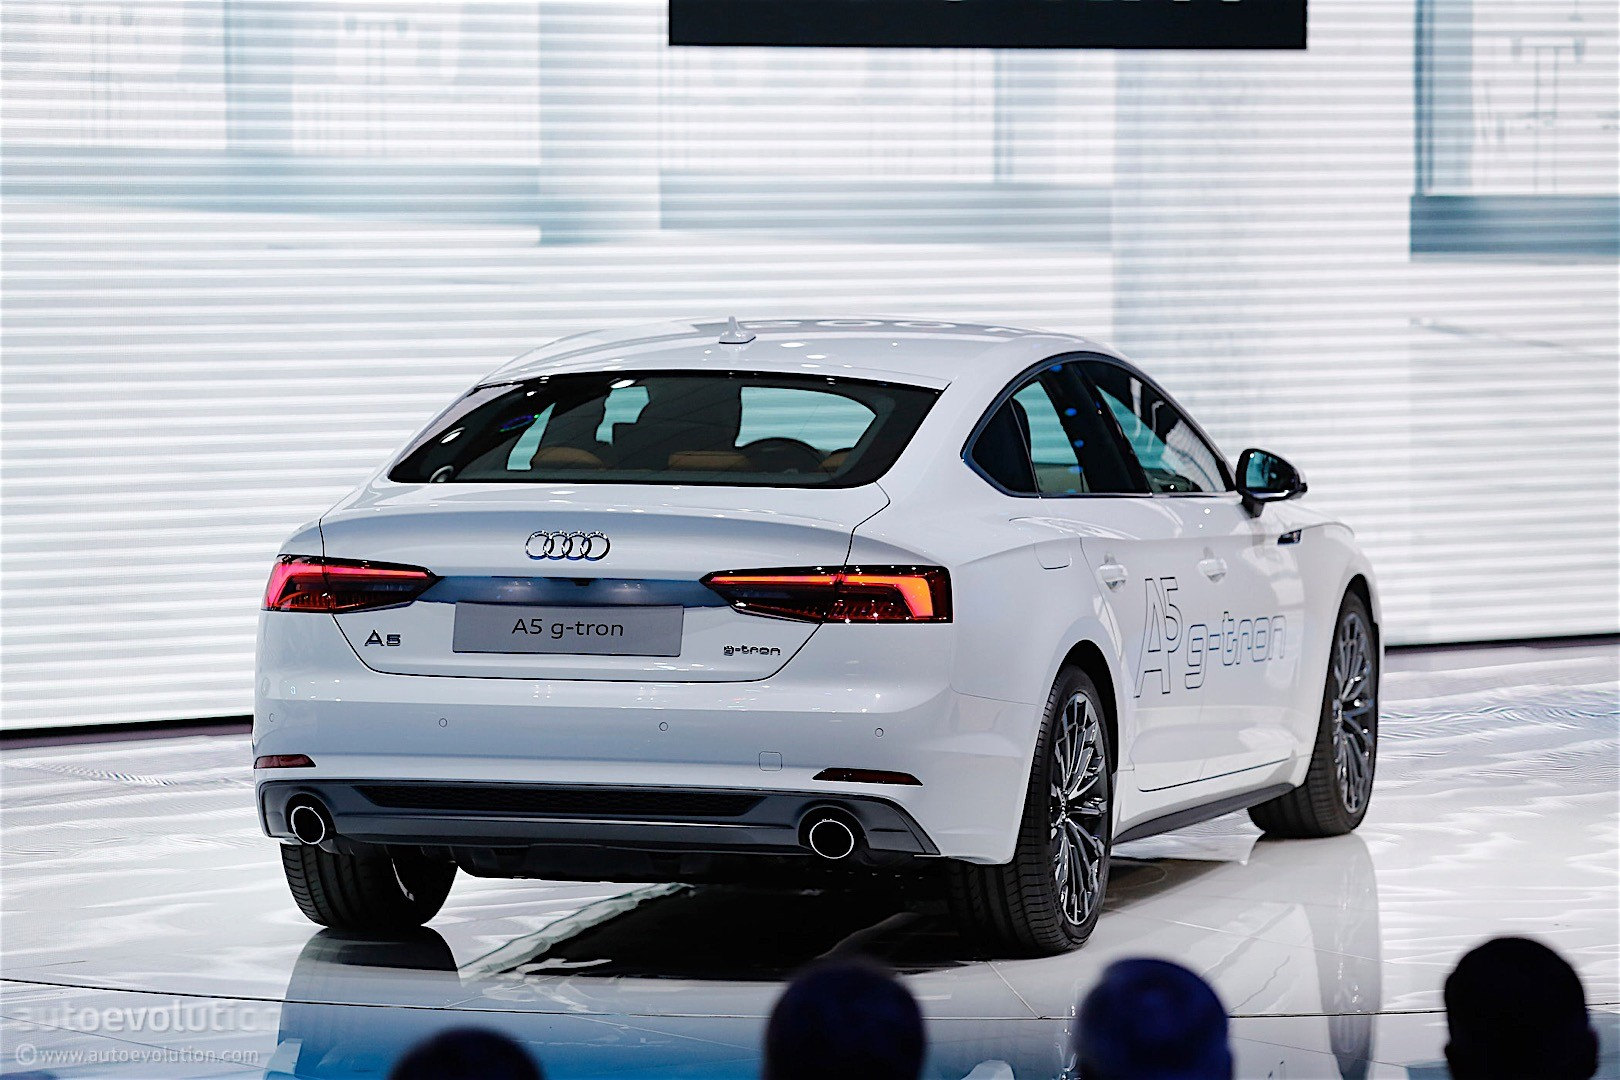 audi a5 sportback g tron shows up in geneva will be. Black Bedroom Furniture Sets. Home Design Ideas